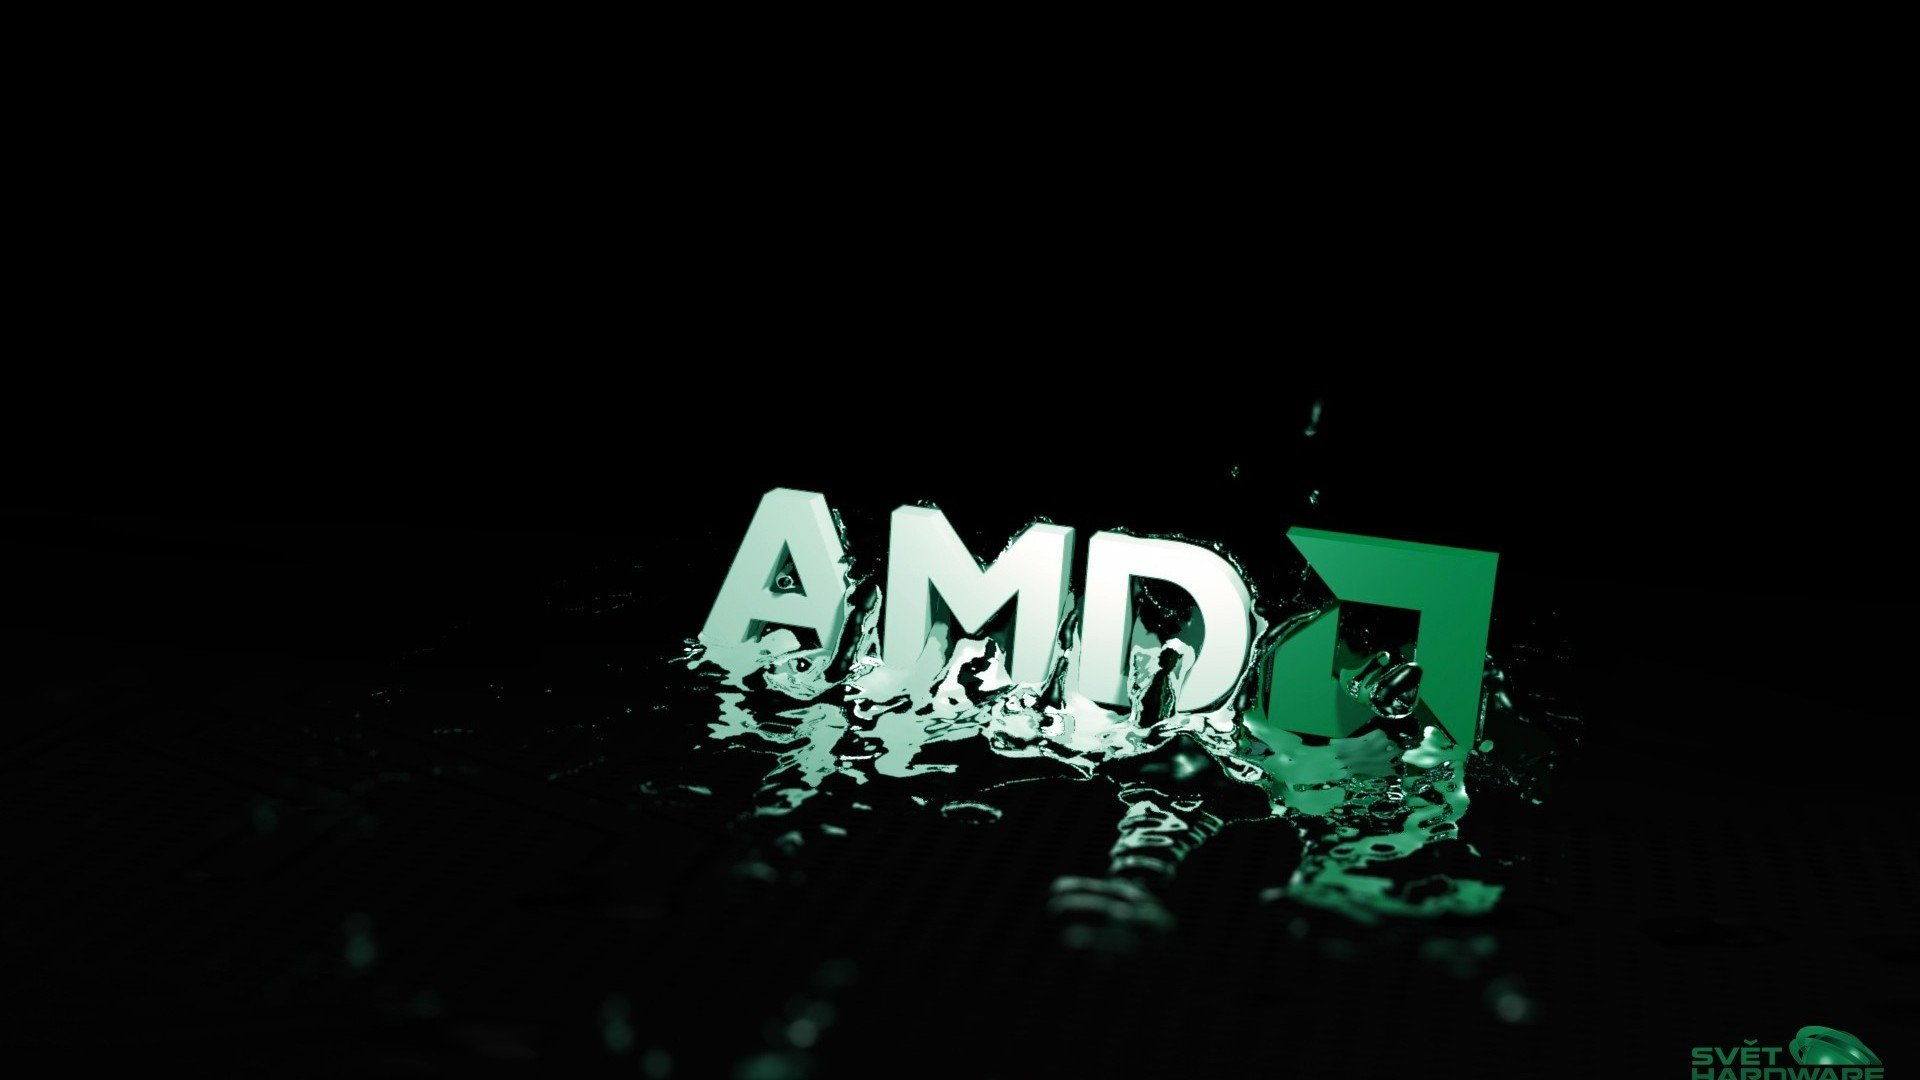 pinsdaddy-amd-computer-gaming-game-graphics-wallpaper-background.jpg